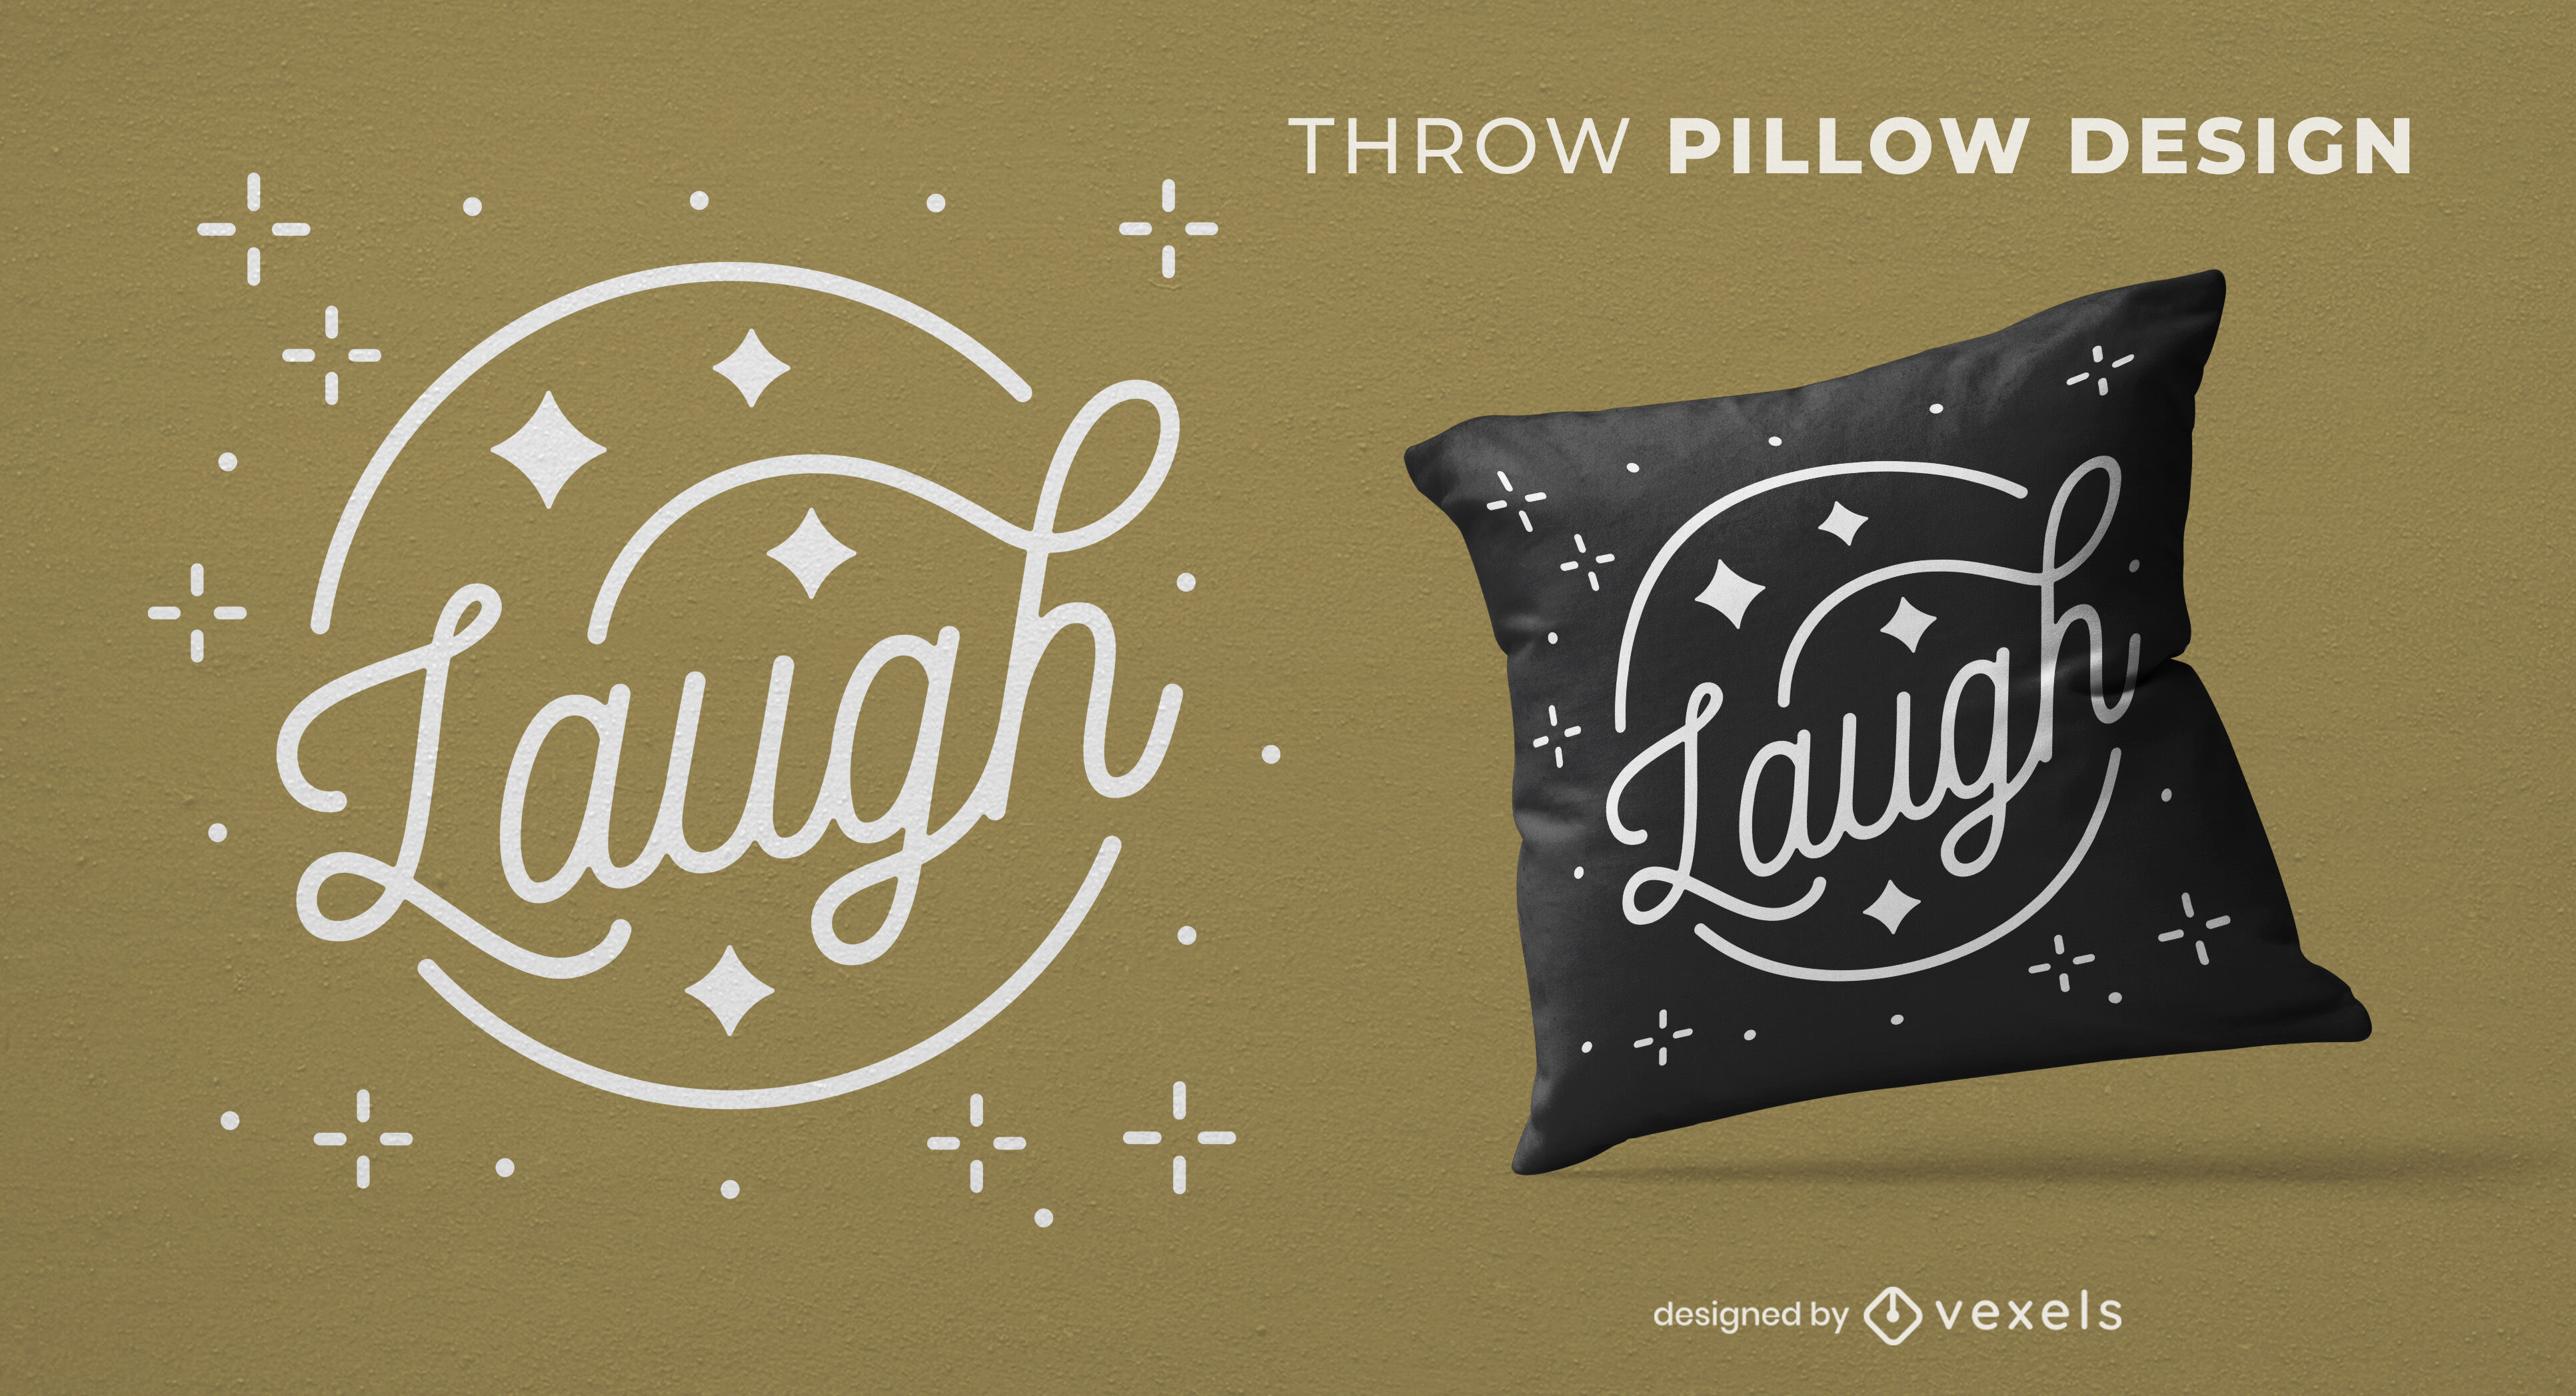 Laugh sparkly lettering throw pillow design